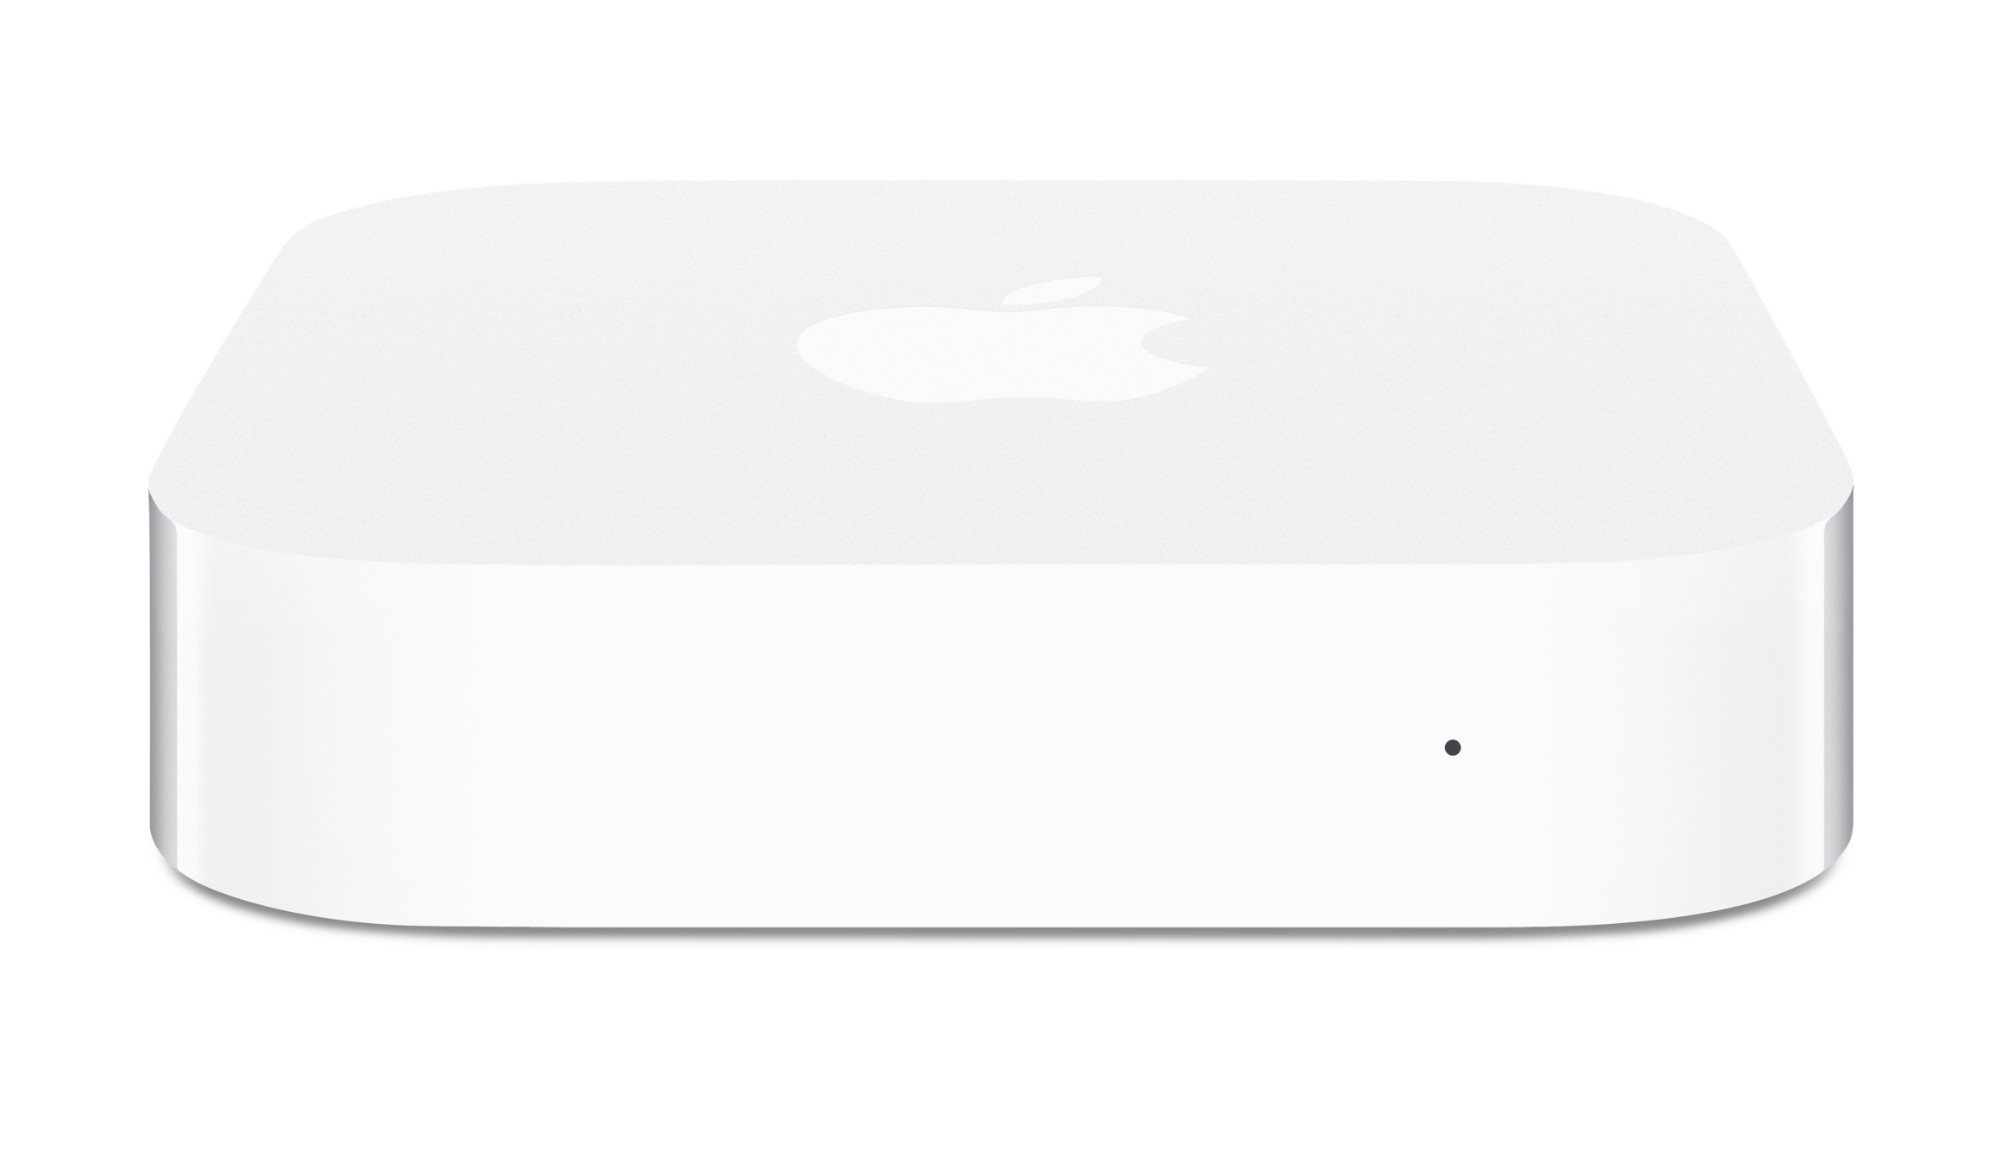 Apple AirPort Express Base Station 300Mbit/s WLAN access point